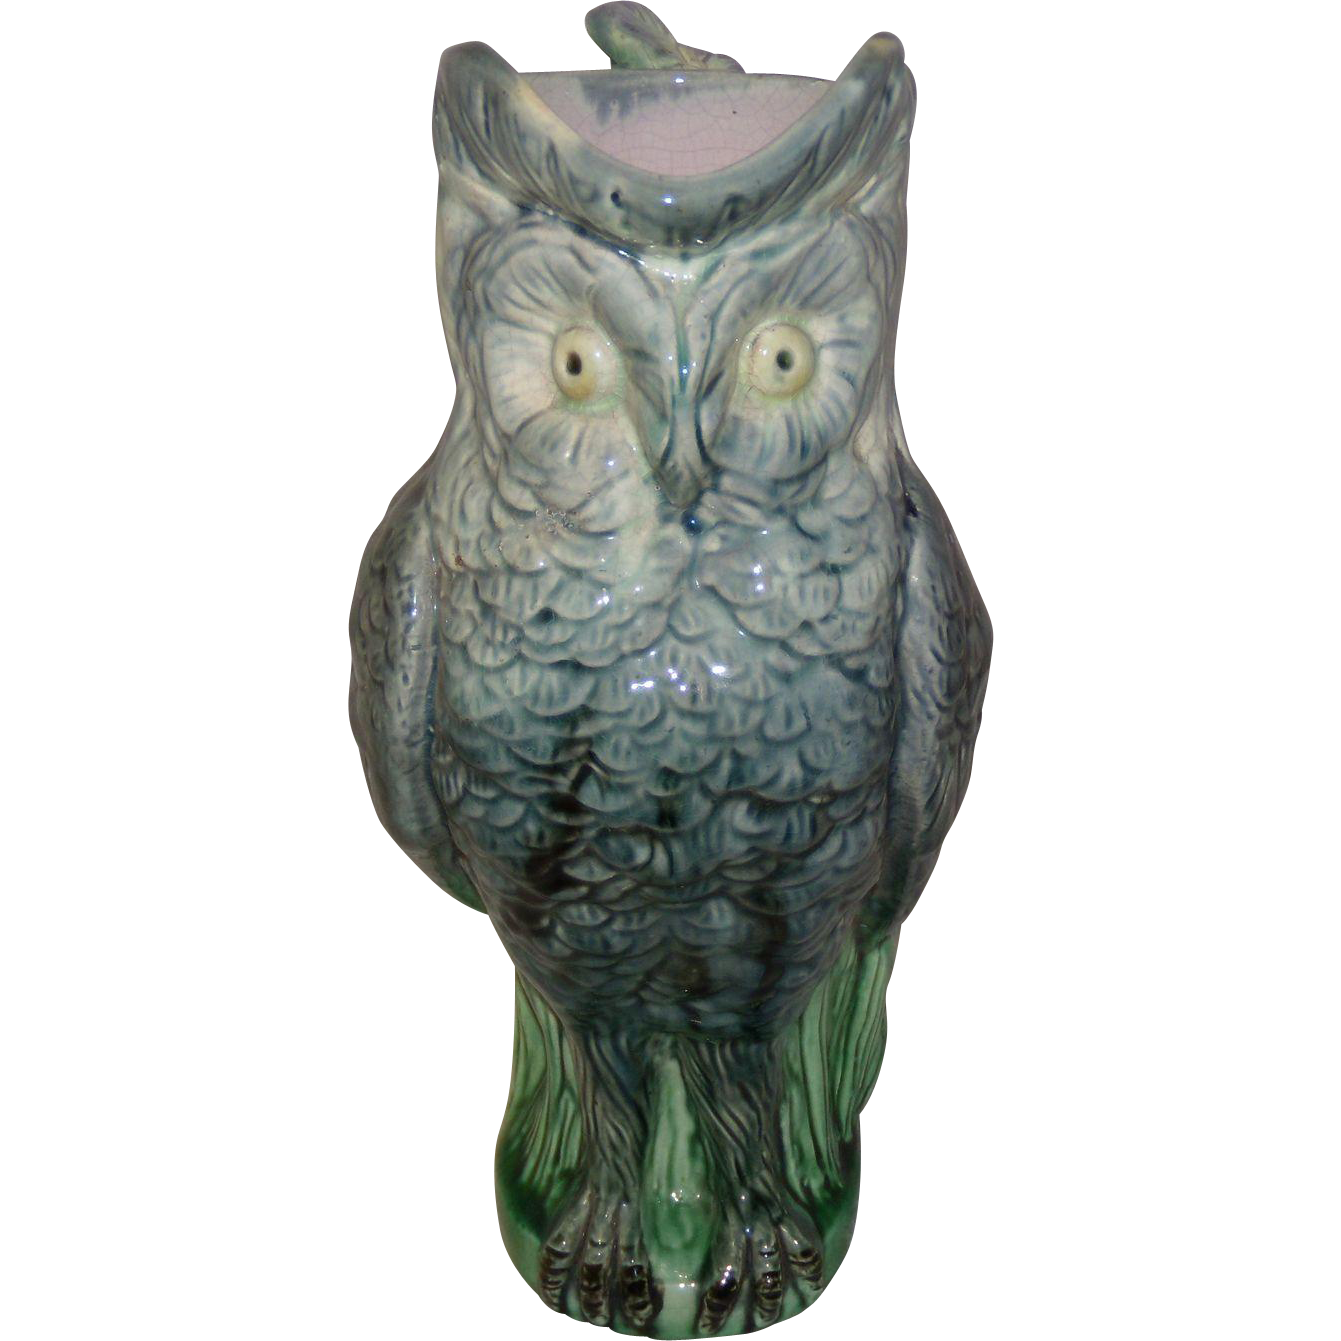 Antique Majolica Owl Pitcher